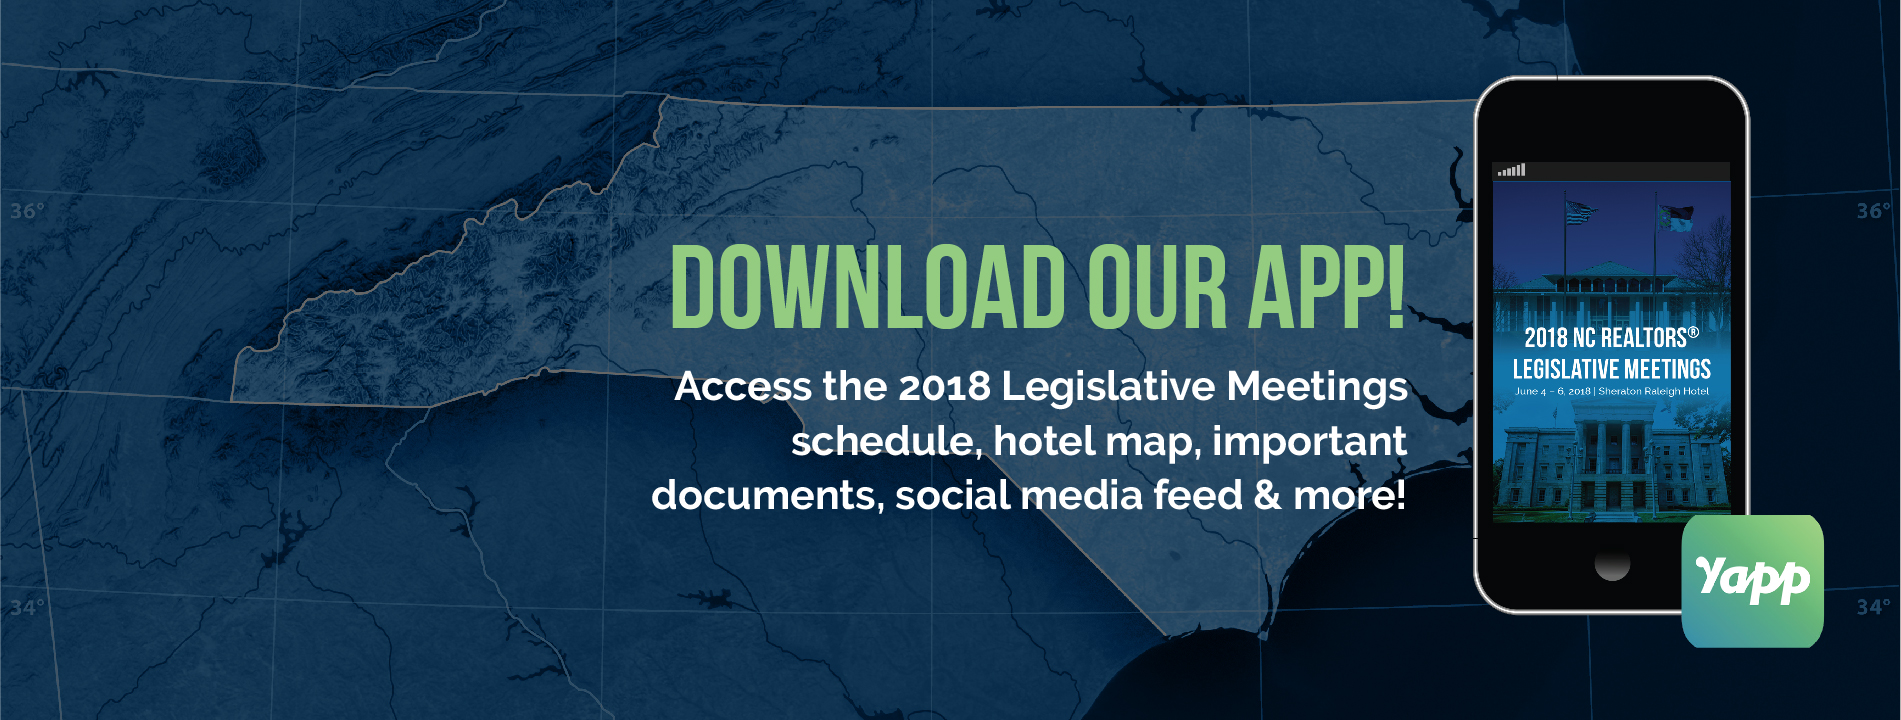 2018 Legislative Meeting Download Our App